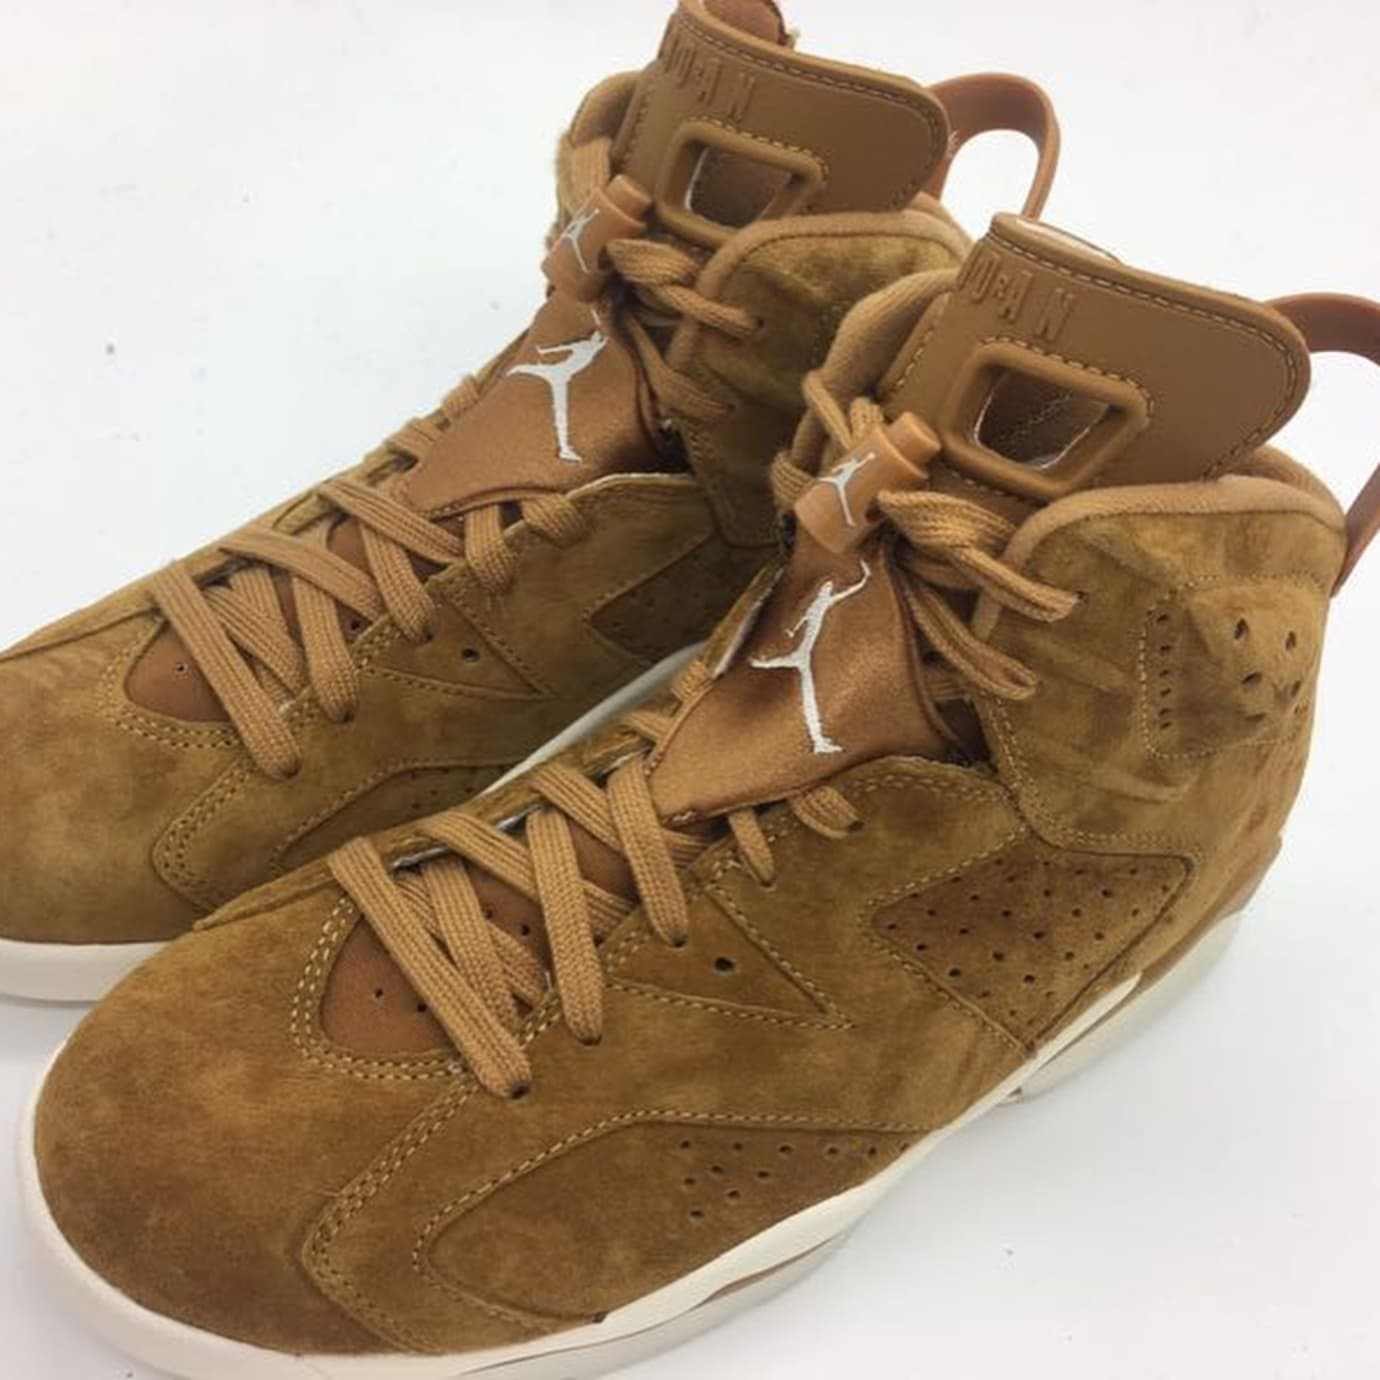 Air Jordan 6 Golden Harvest Wheat Release Date 384664 705